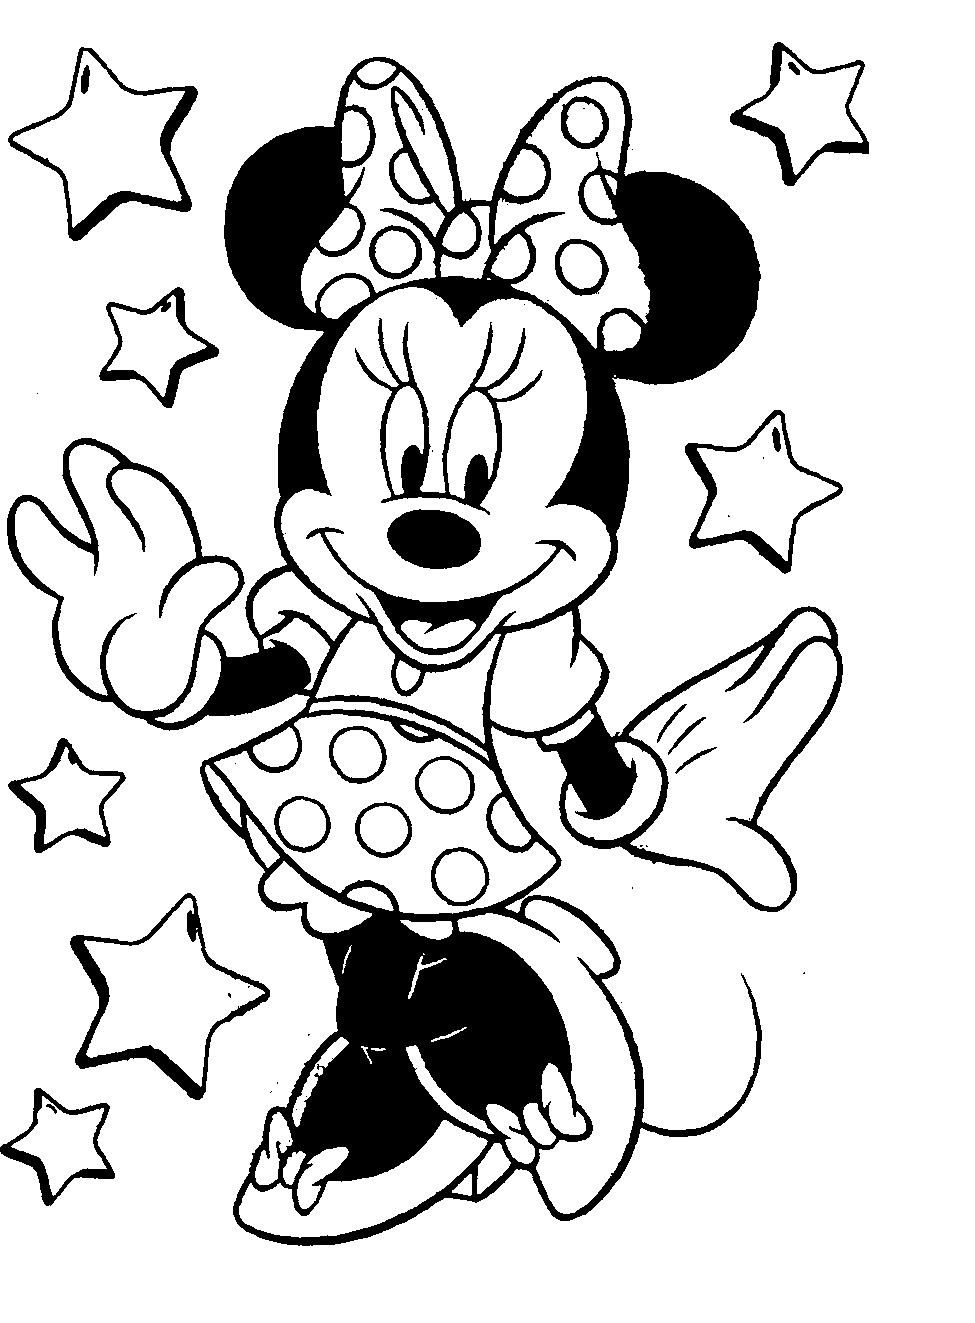 Simple Minnie Mouse Drawing At Getdrawings Com Free For Personal